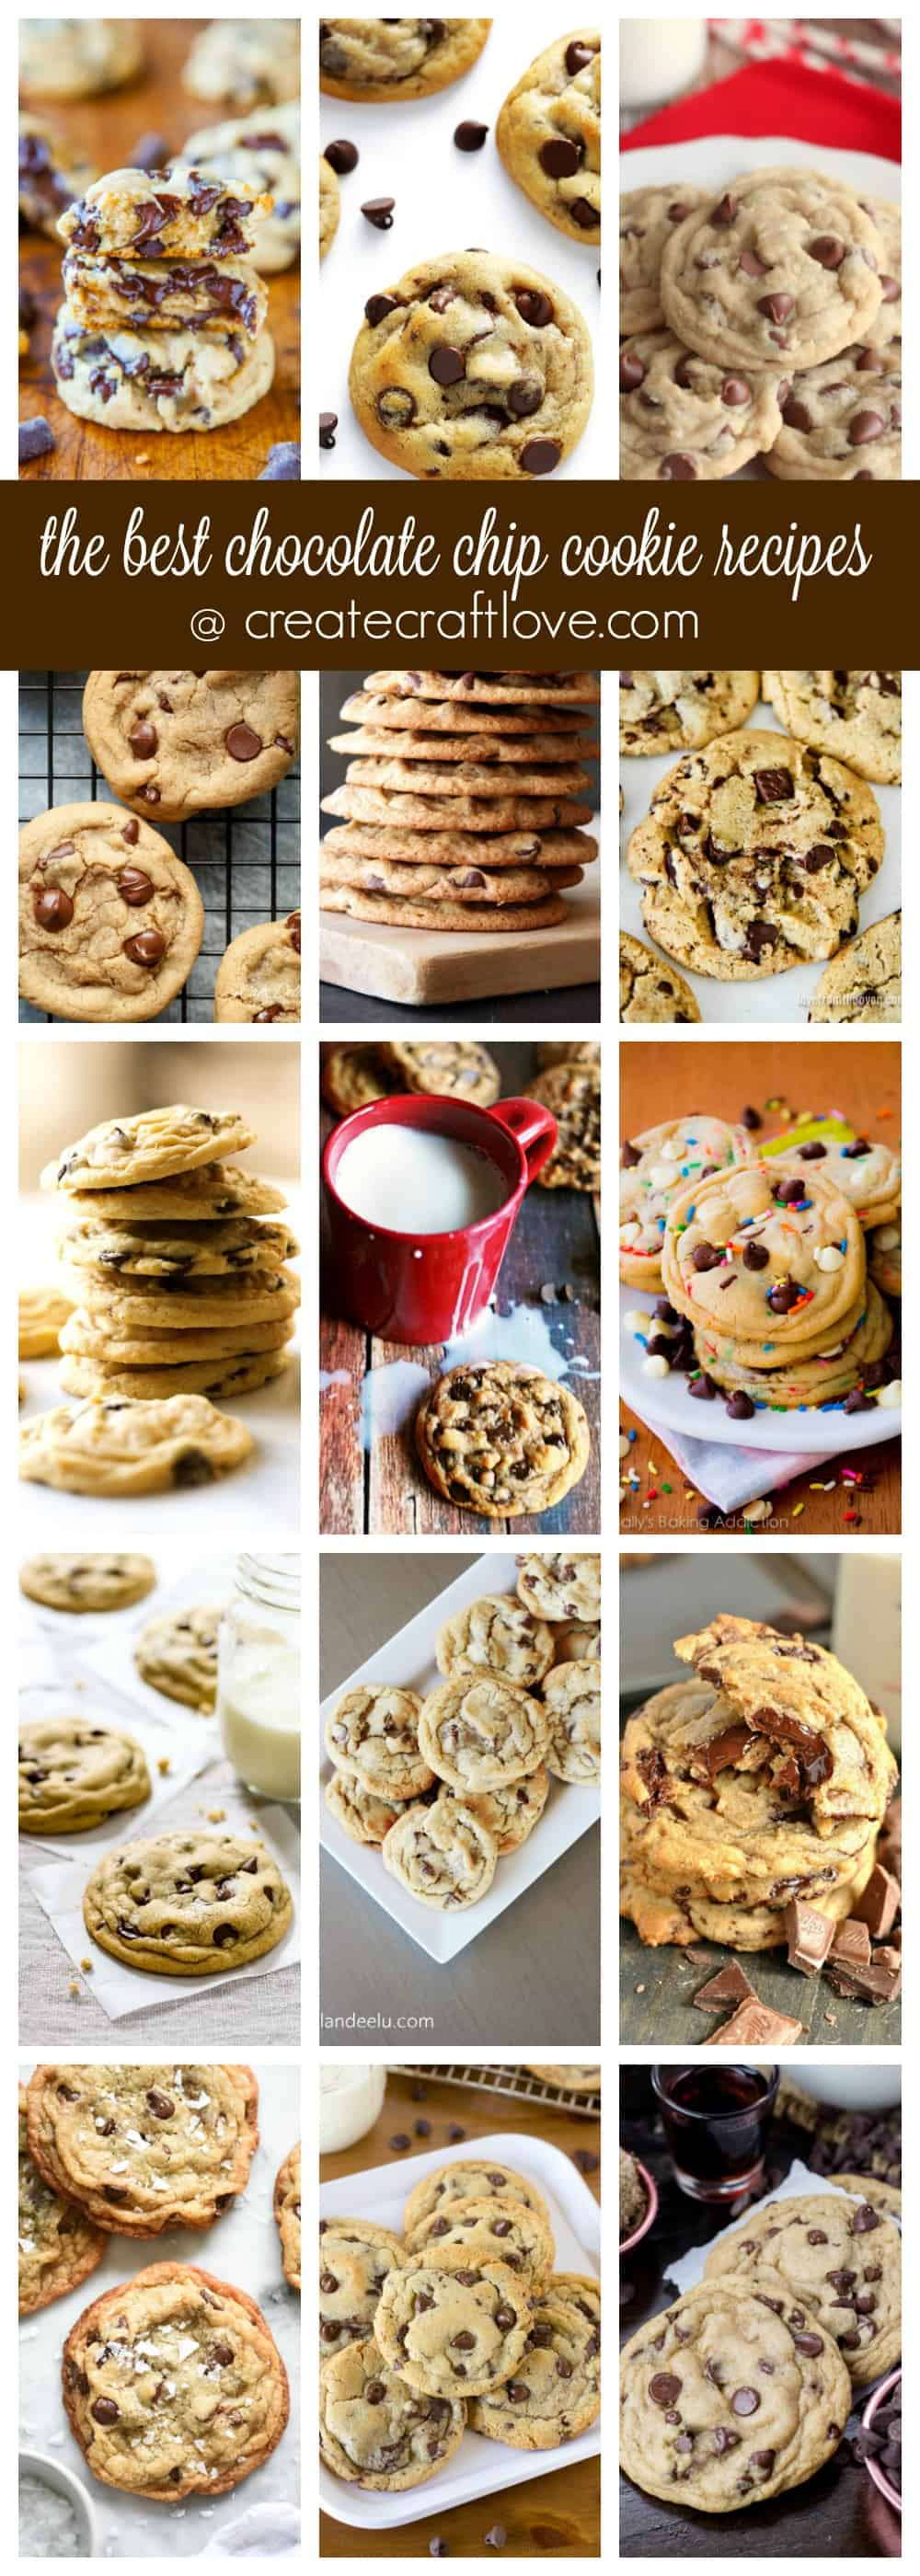 The One with all the Chocolate Chip Cookie Recipes